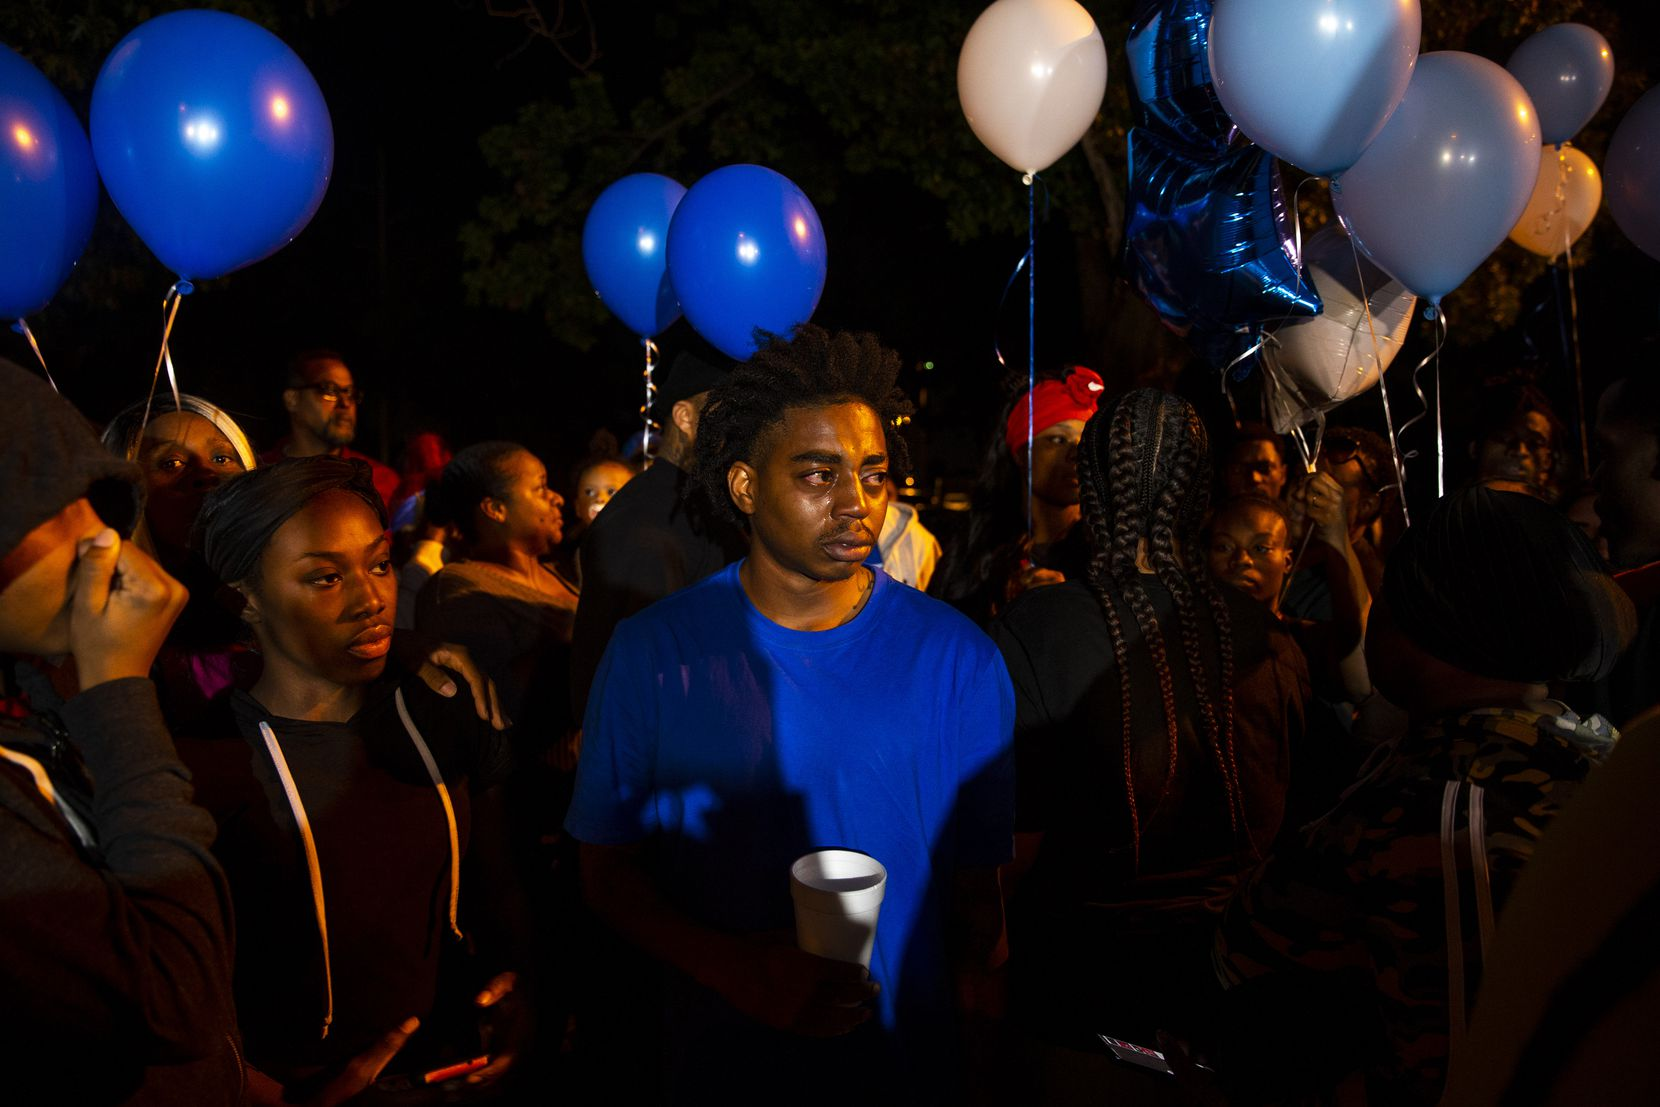 Family members take a moment before releasing balloons during a vigil for Kevin Berry Jr. on Sunday, October 27, 2019 at St. Augustine Park in Dallas. Kevin Berry Jr., whose nickname was Lil Wess, was one of the victims killed early Sunday morning when a gunman opened fire at a paerty near Greenville, Texas.